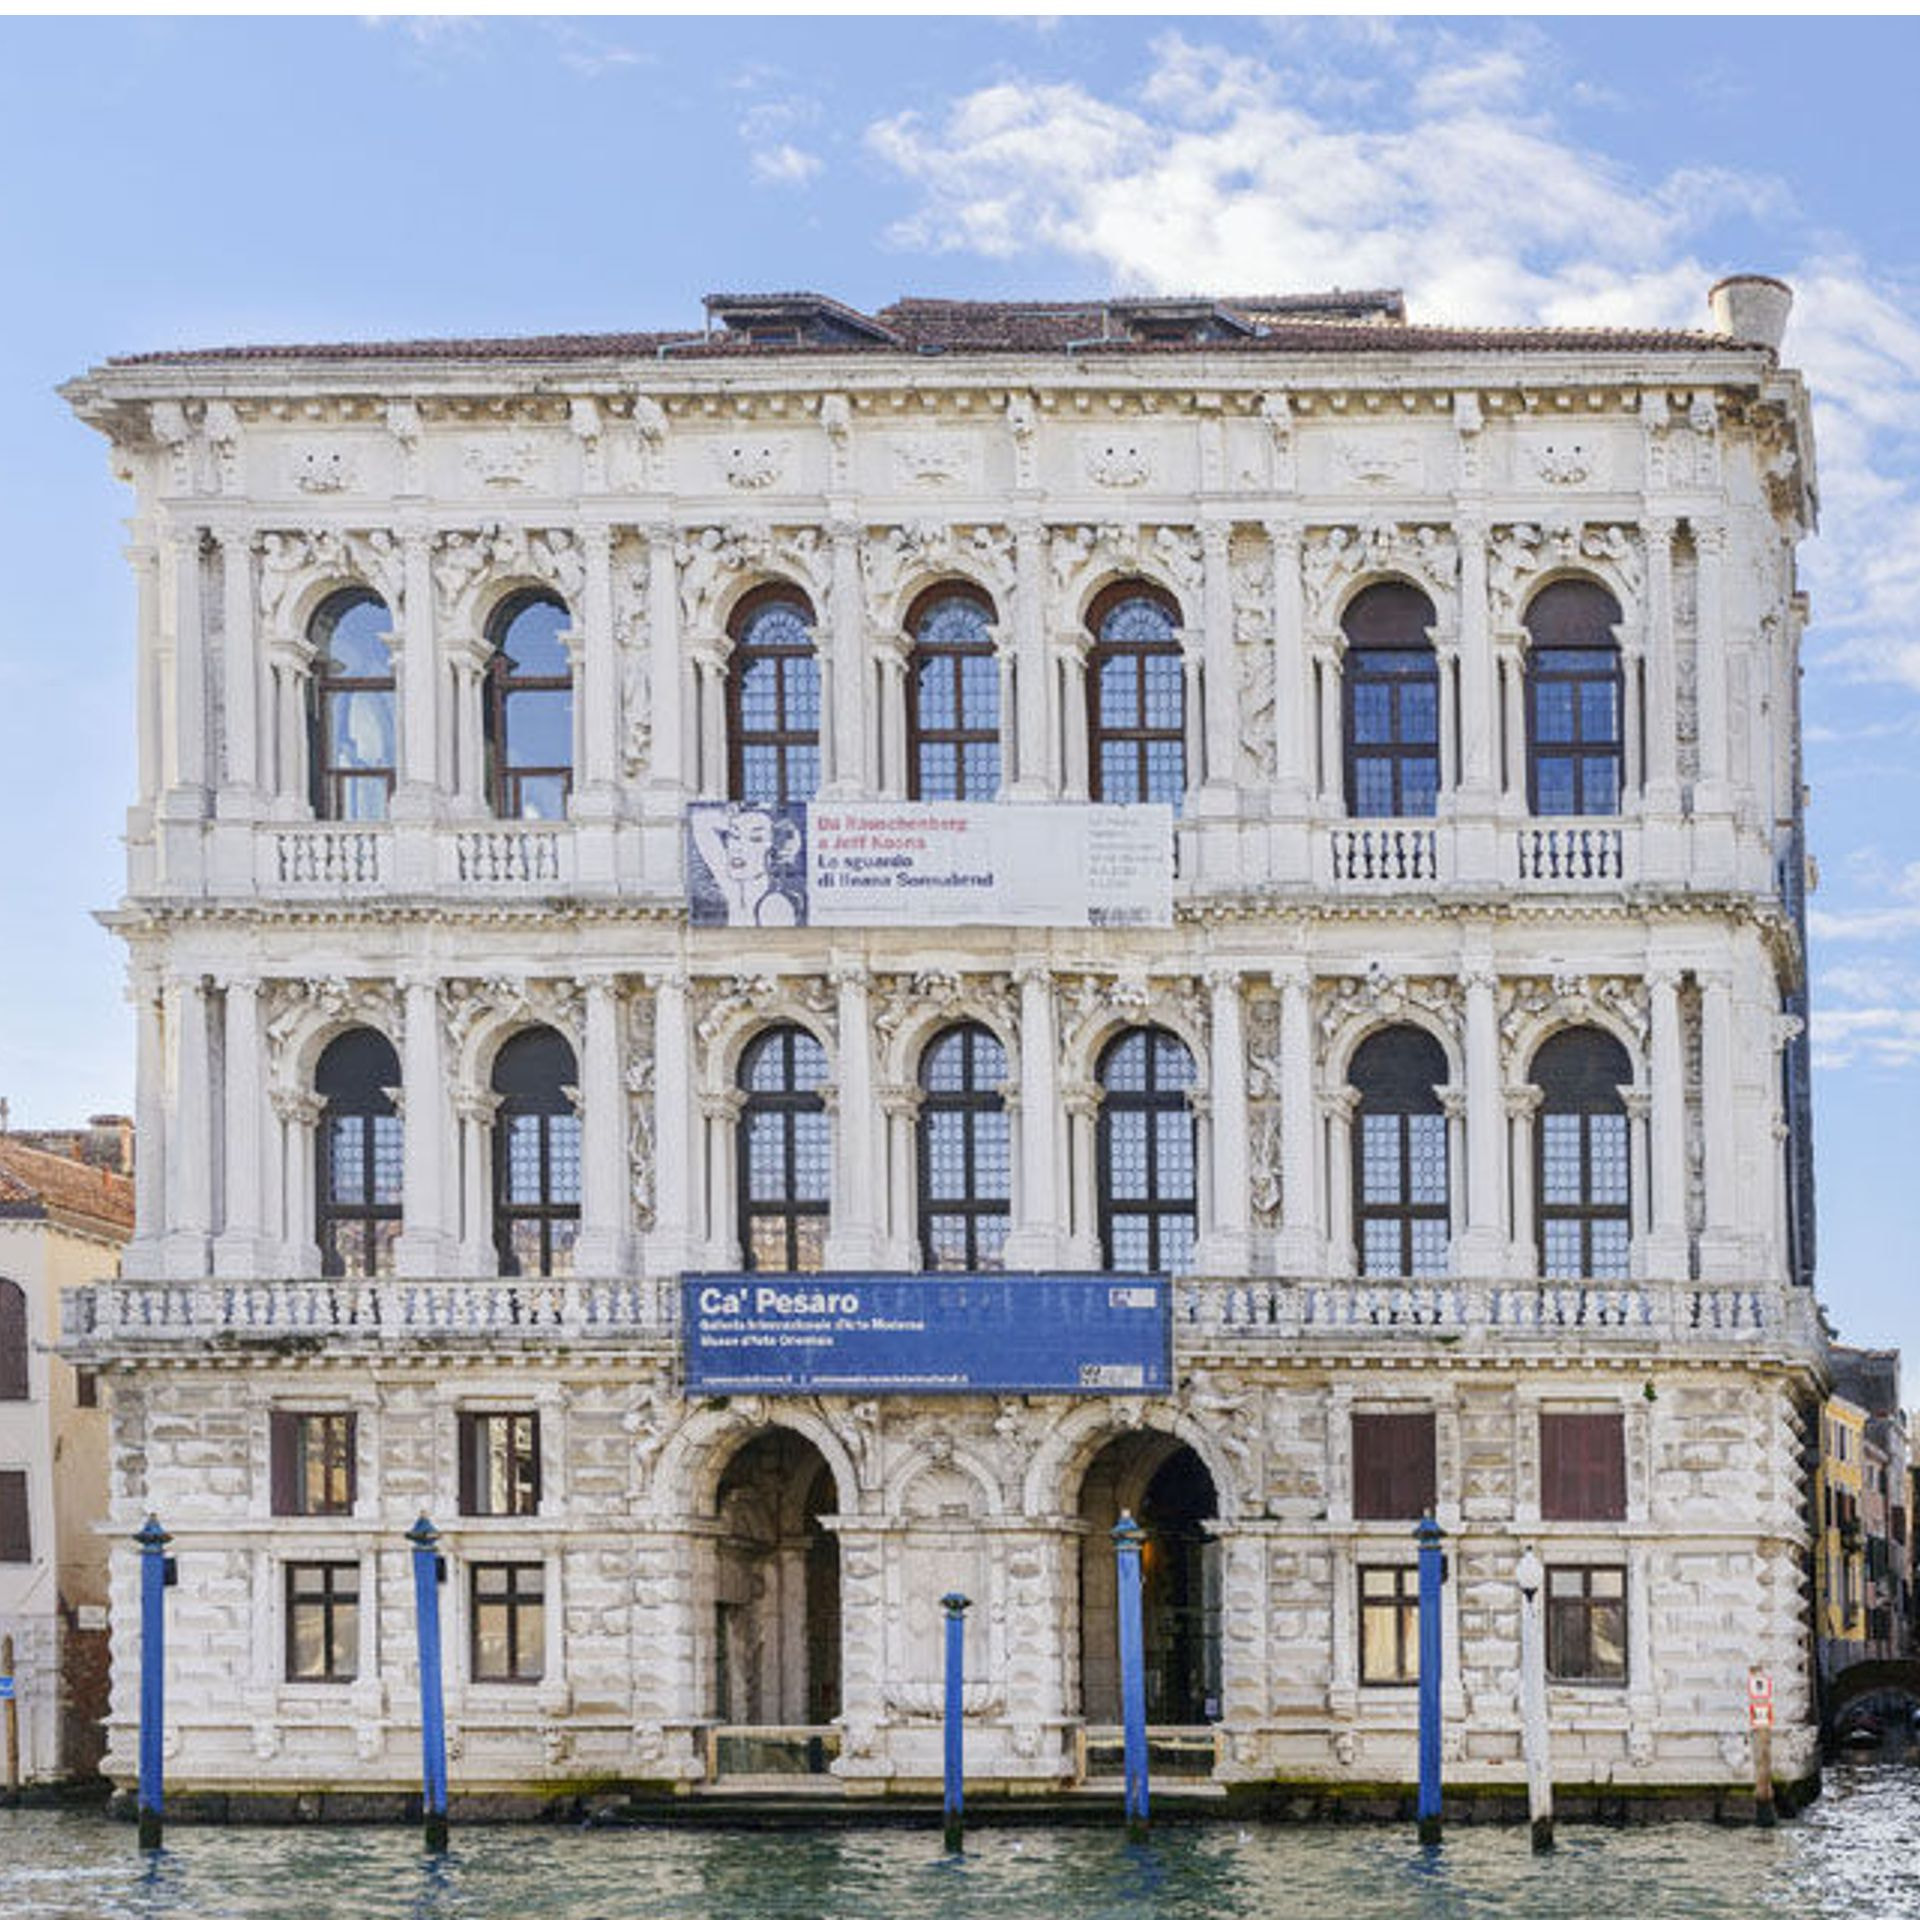 Discover the charm of Venice walking through the city, enjoying exclusive gondola tours or visiting the picturesque islands Murano and Burano.